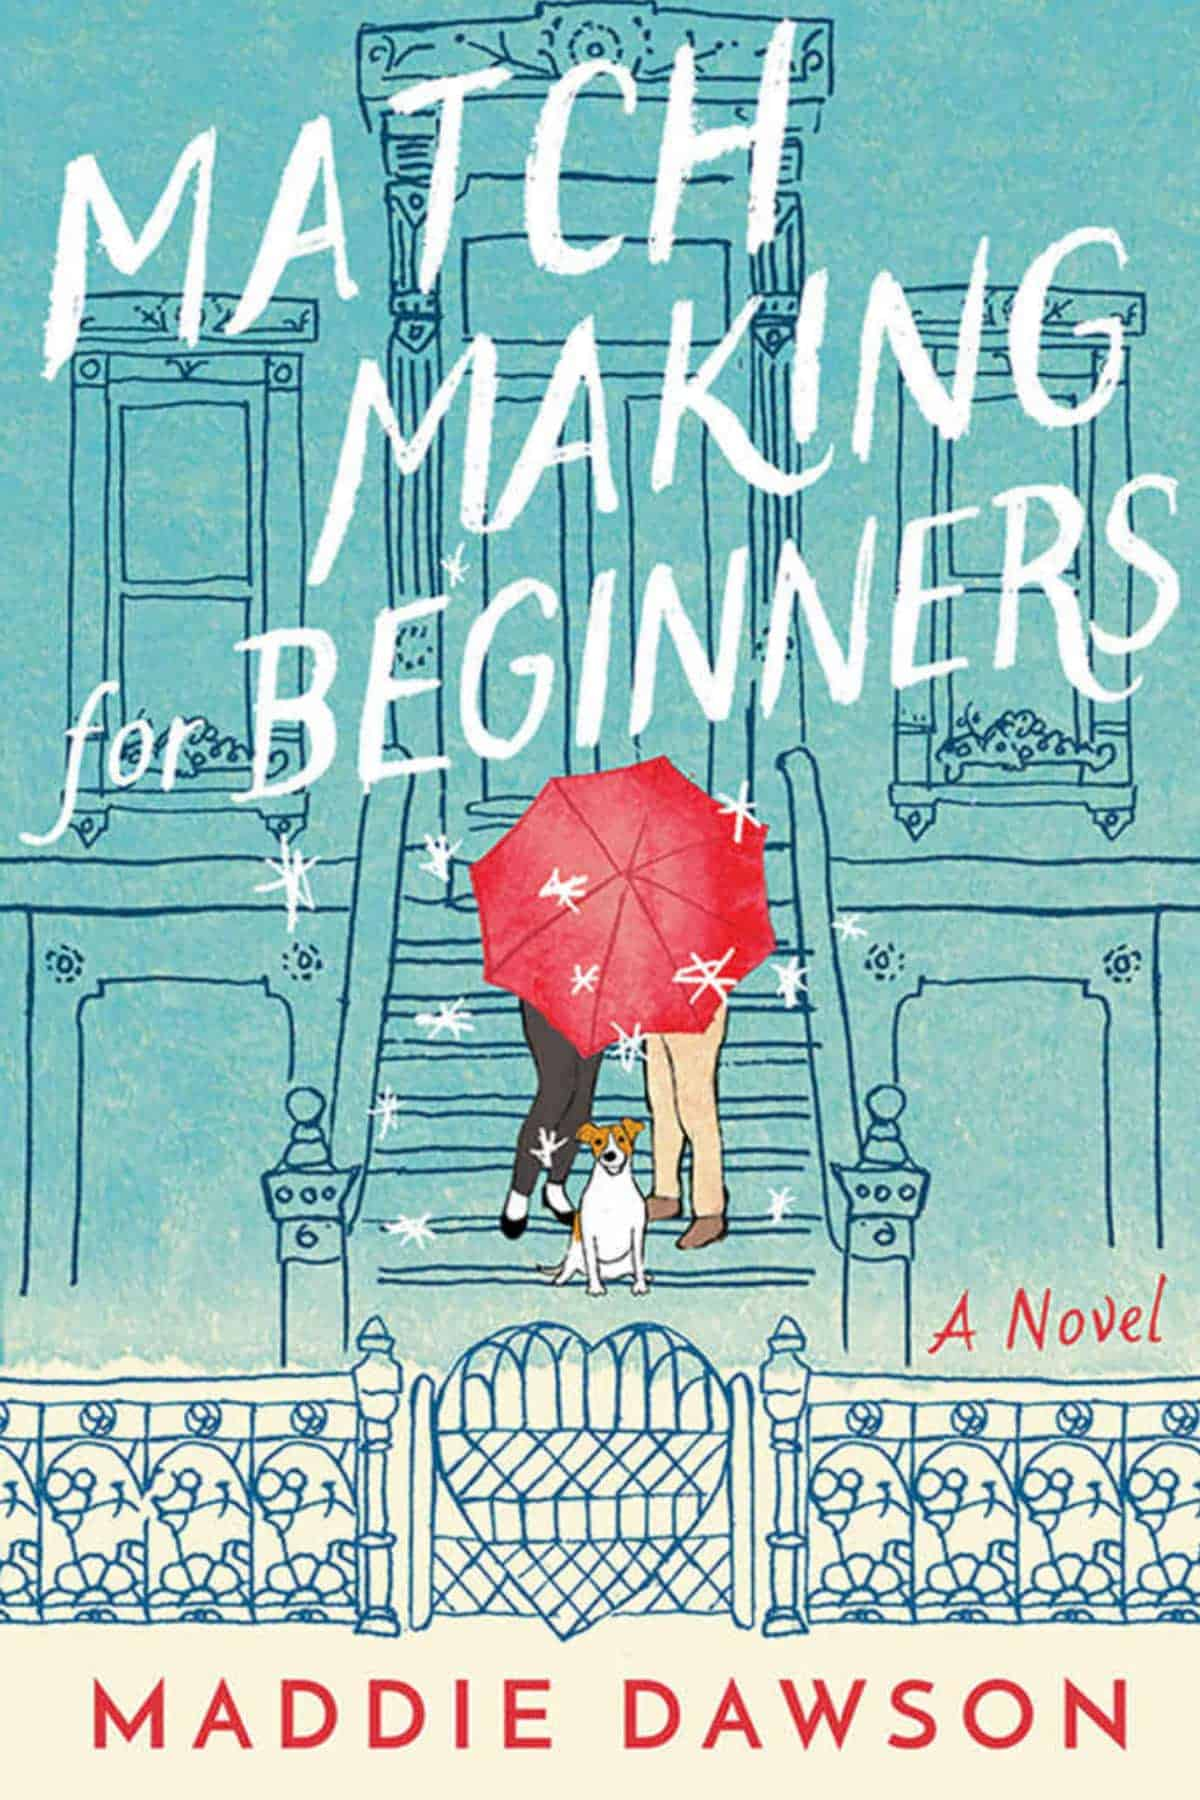 Aunt: Matchmaking for Beginners by Maddie Dawson | Top Kindle Books of 2018 | Gift Ideas For Each Member of the Family